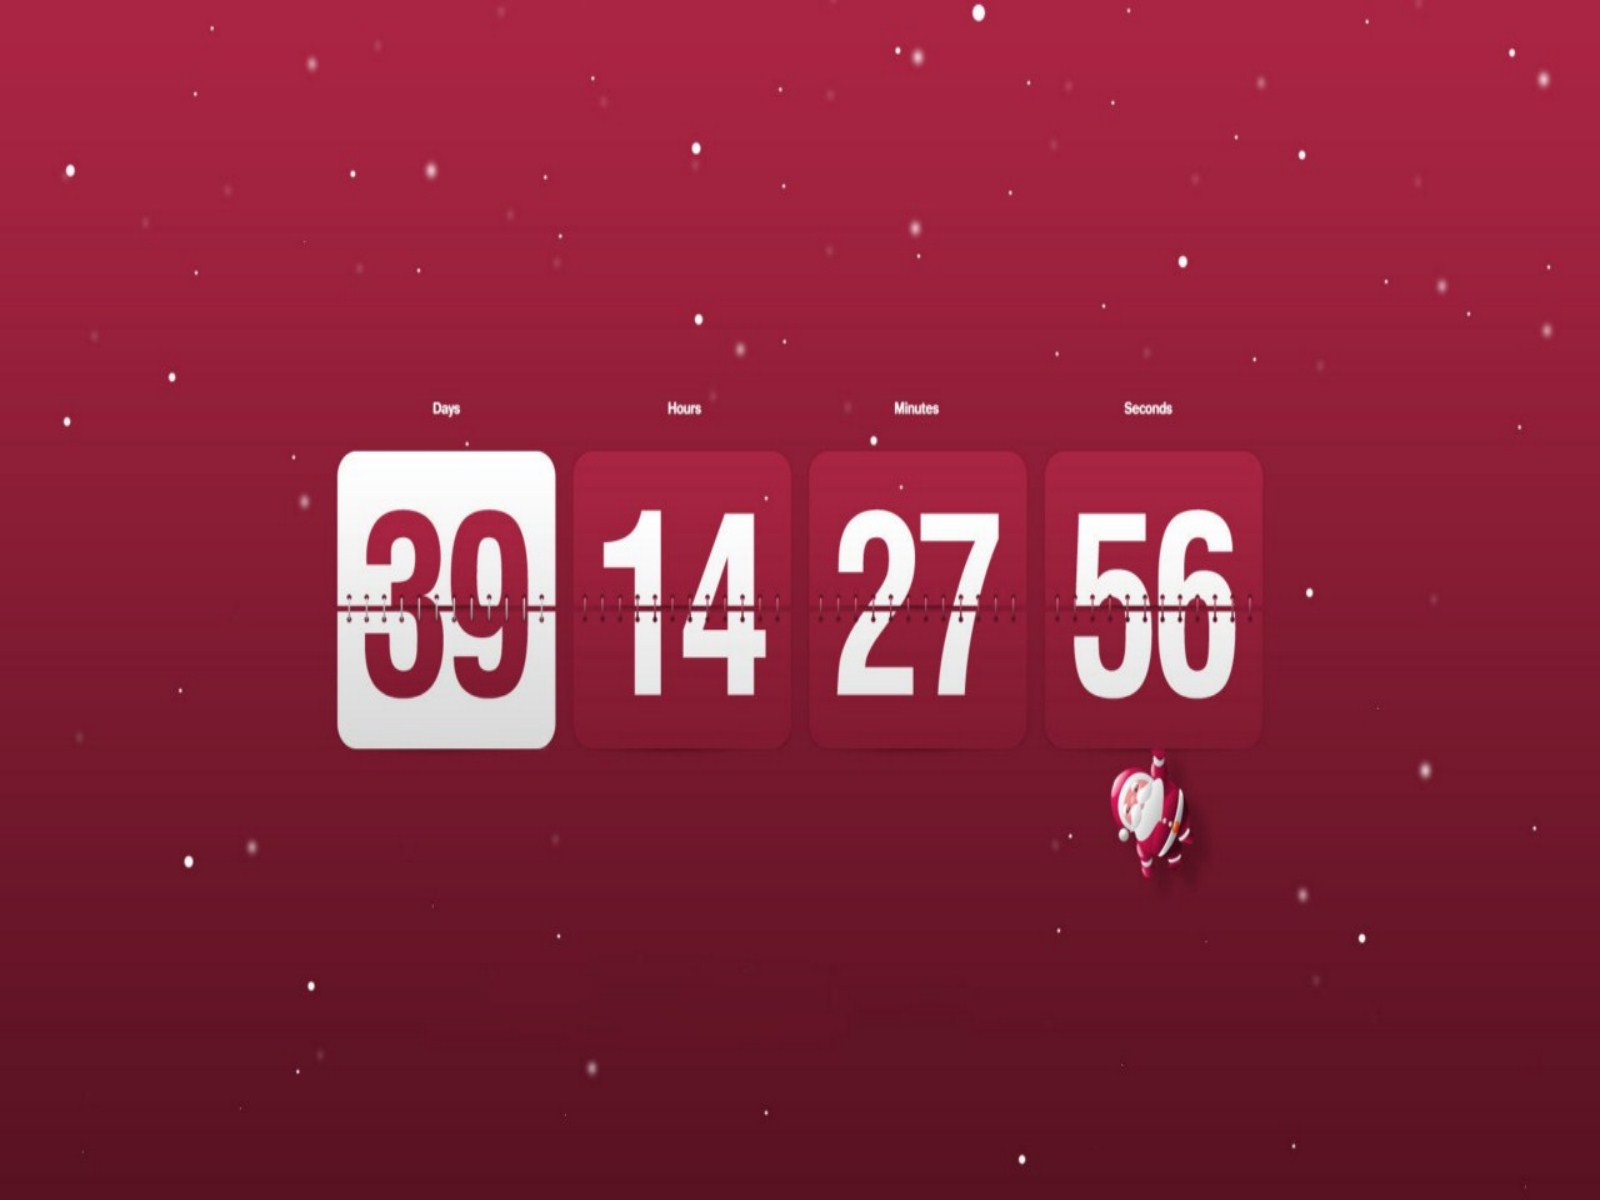 48+] Countdown Wallpaper for iPhone on ...